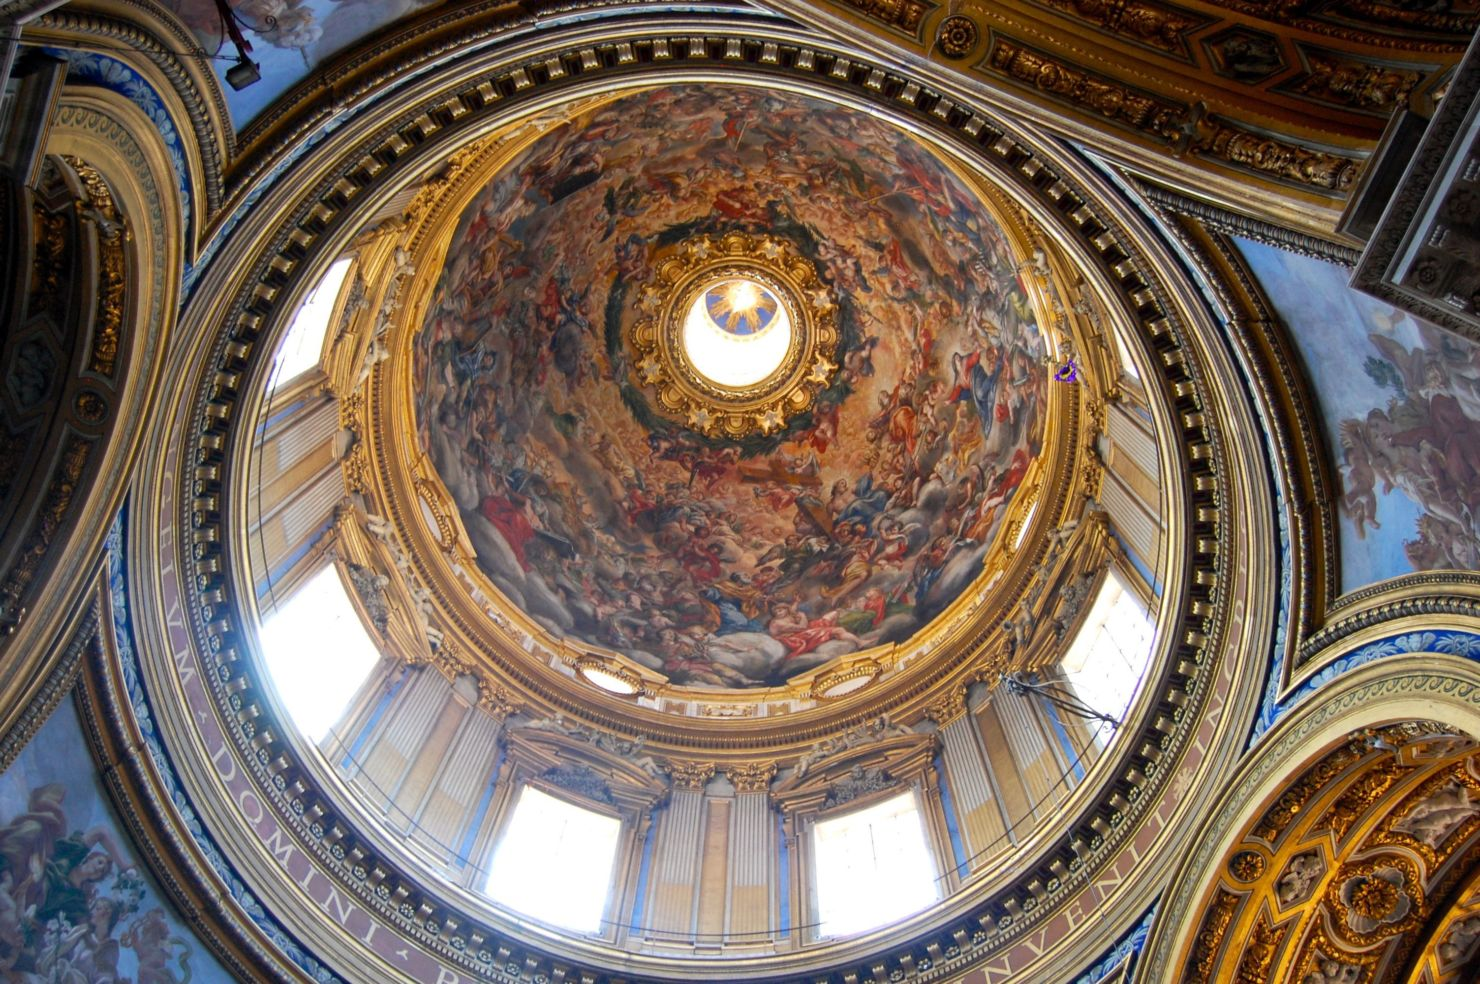 25 reasons why Rome is one of the most beautiful cities in the world